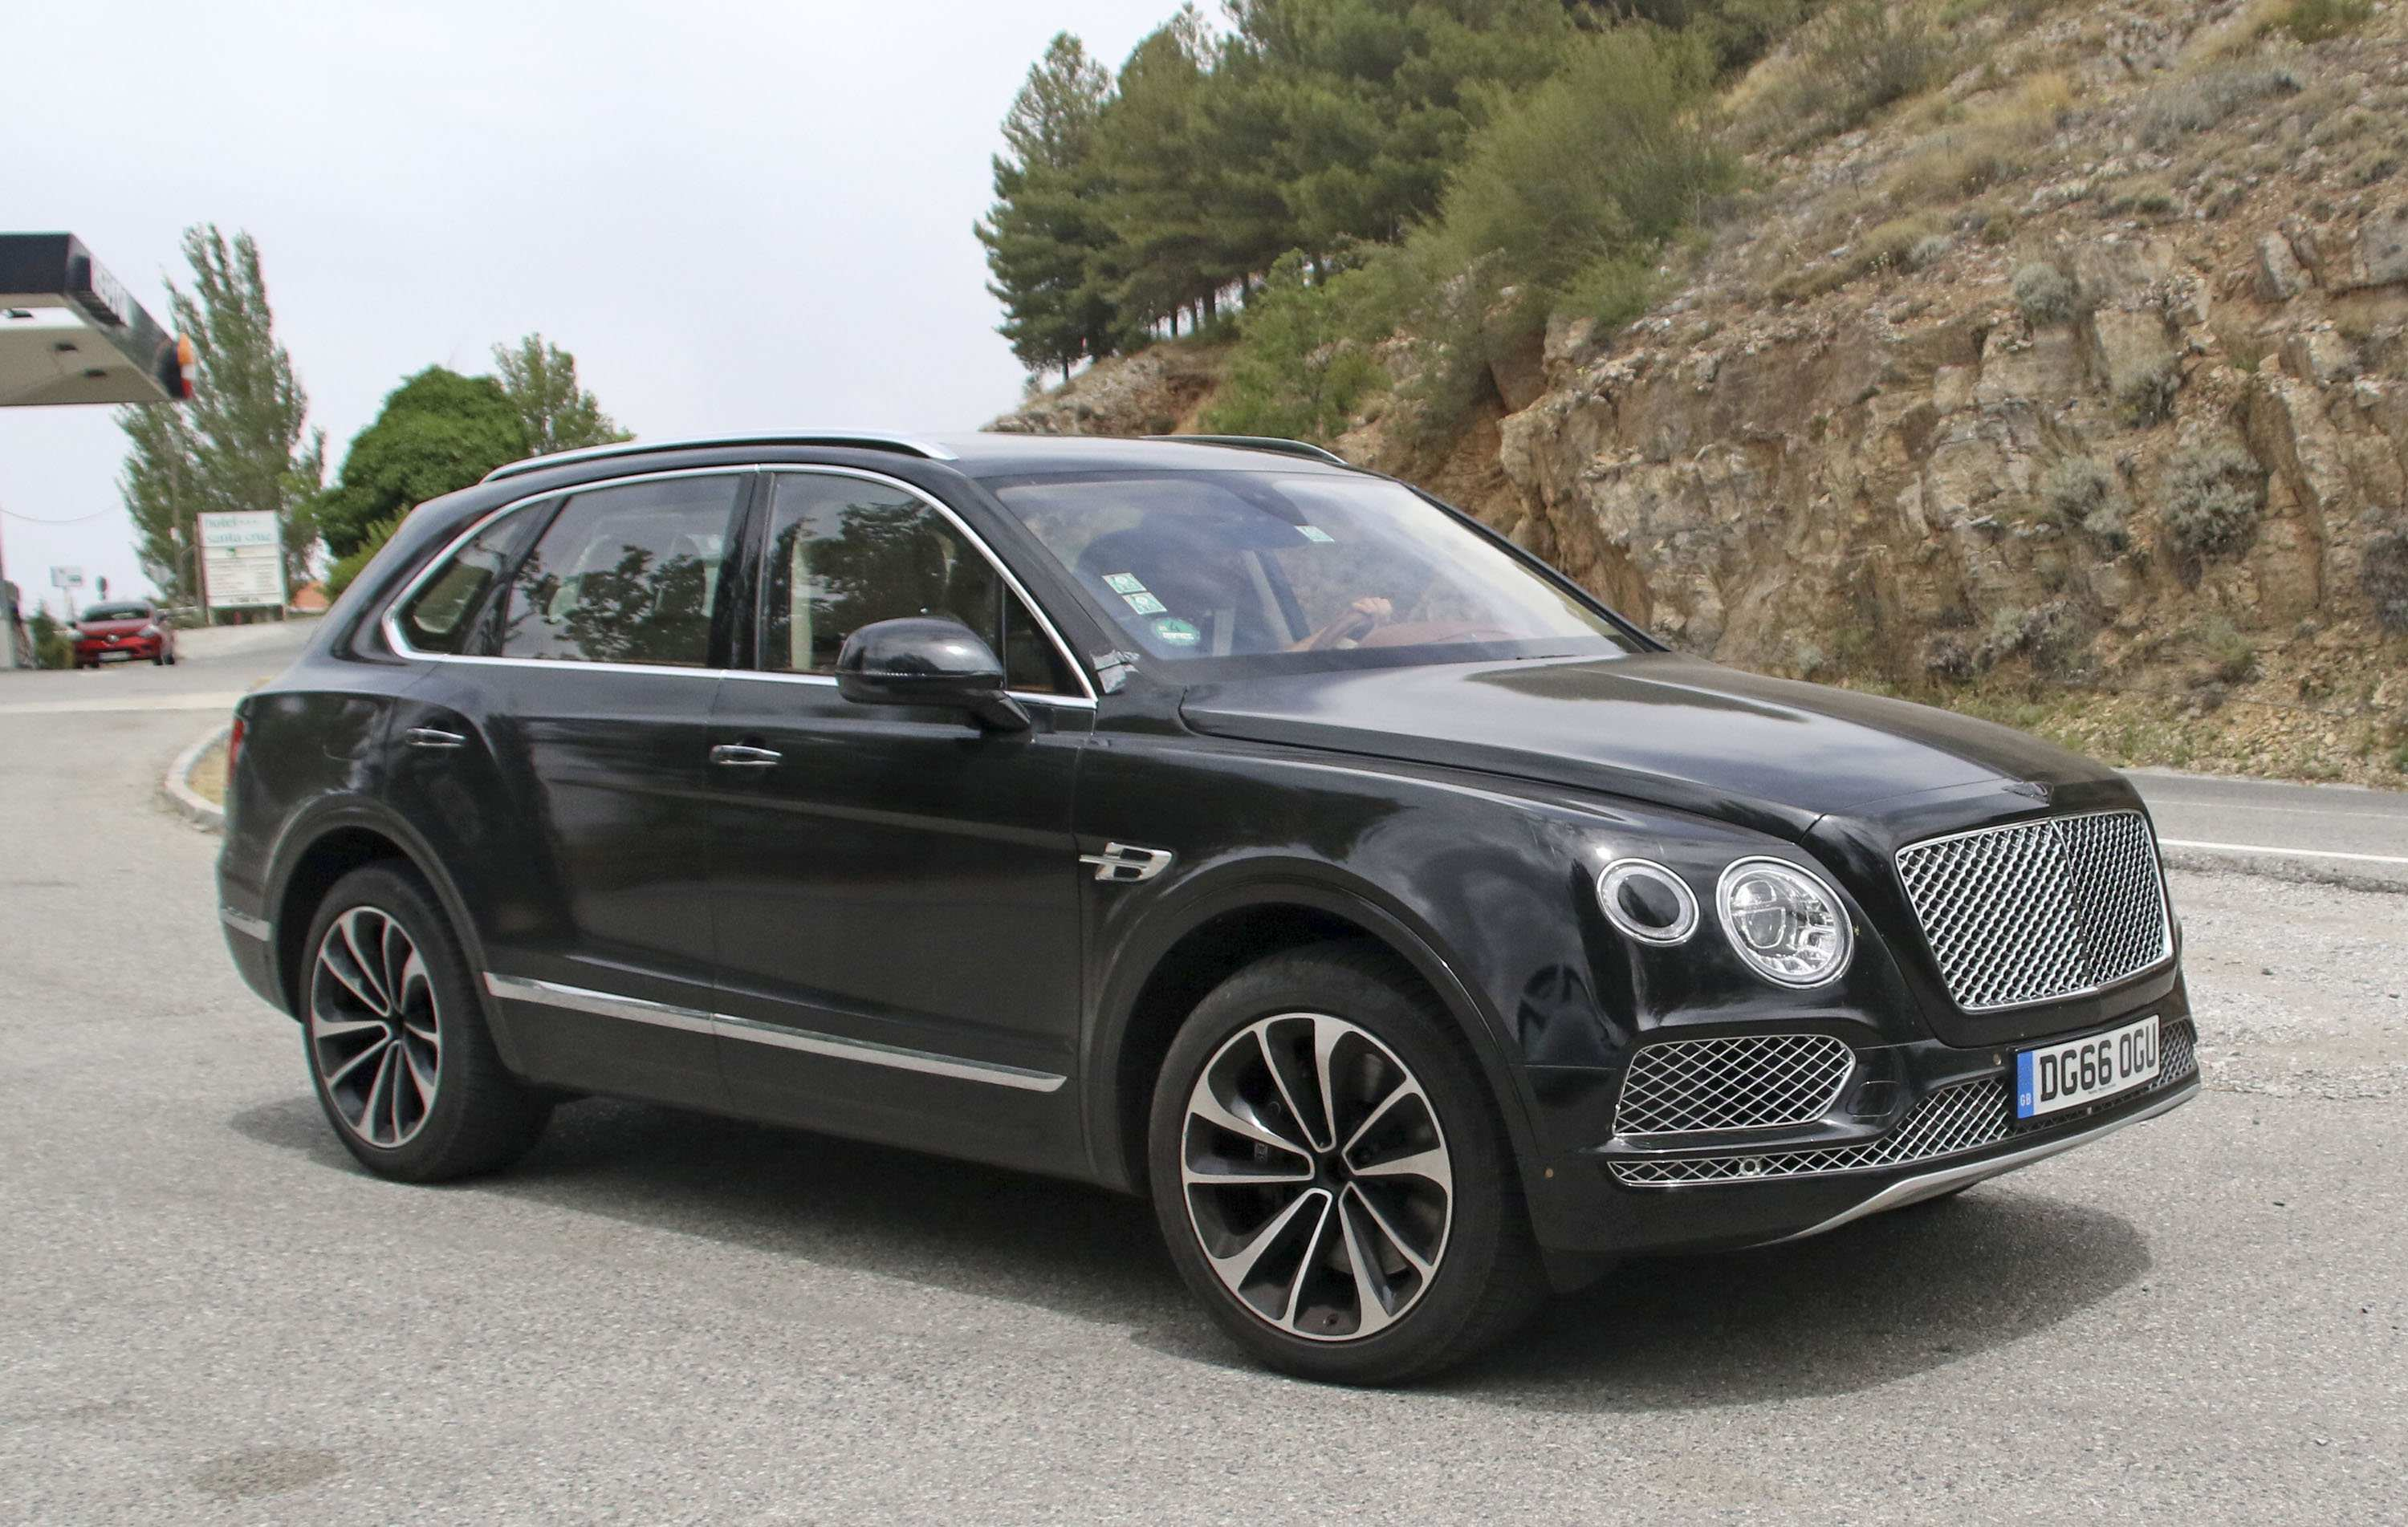 39 Great 2019 Bentley Suv Price Release Date with 2019 Bentley Suv Price